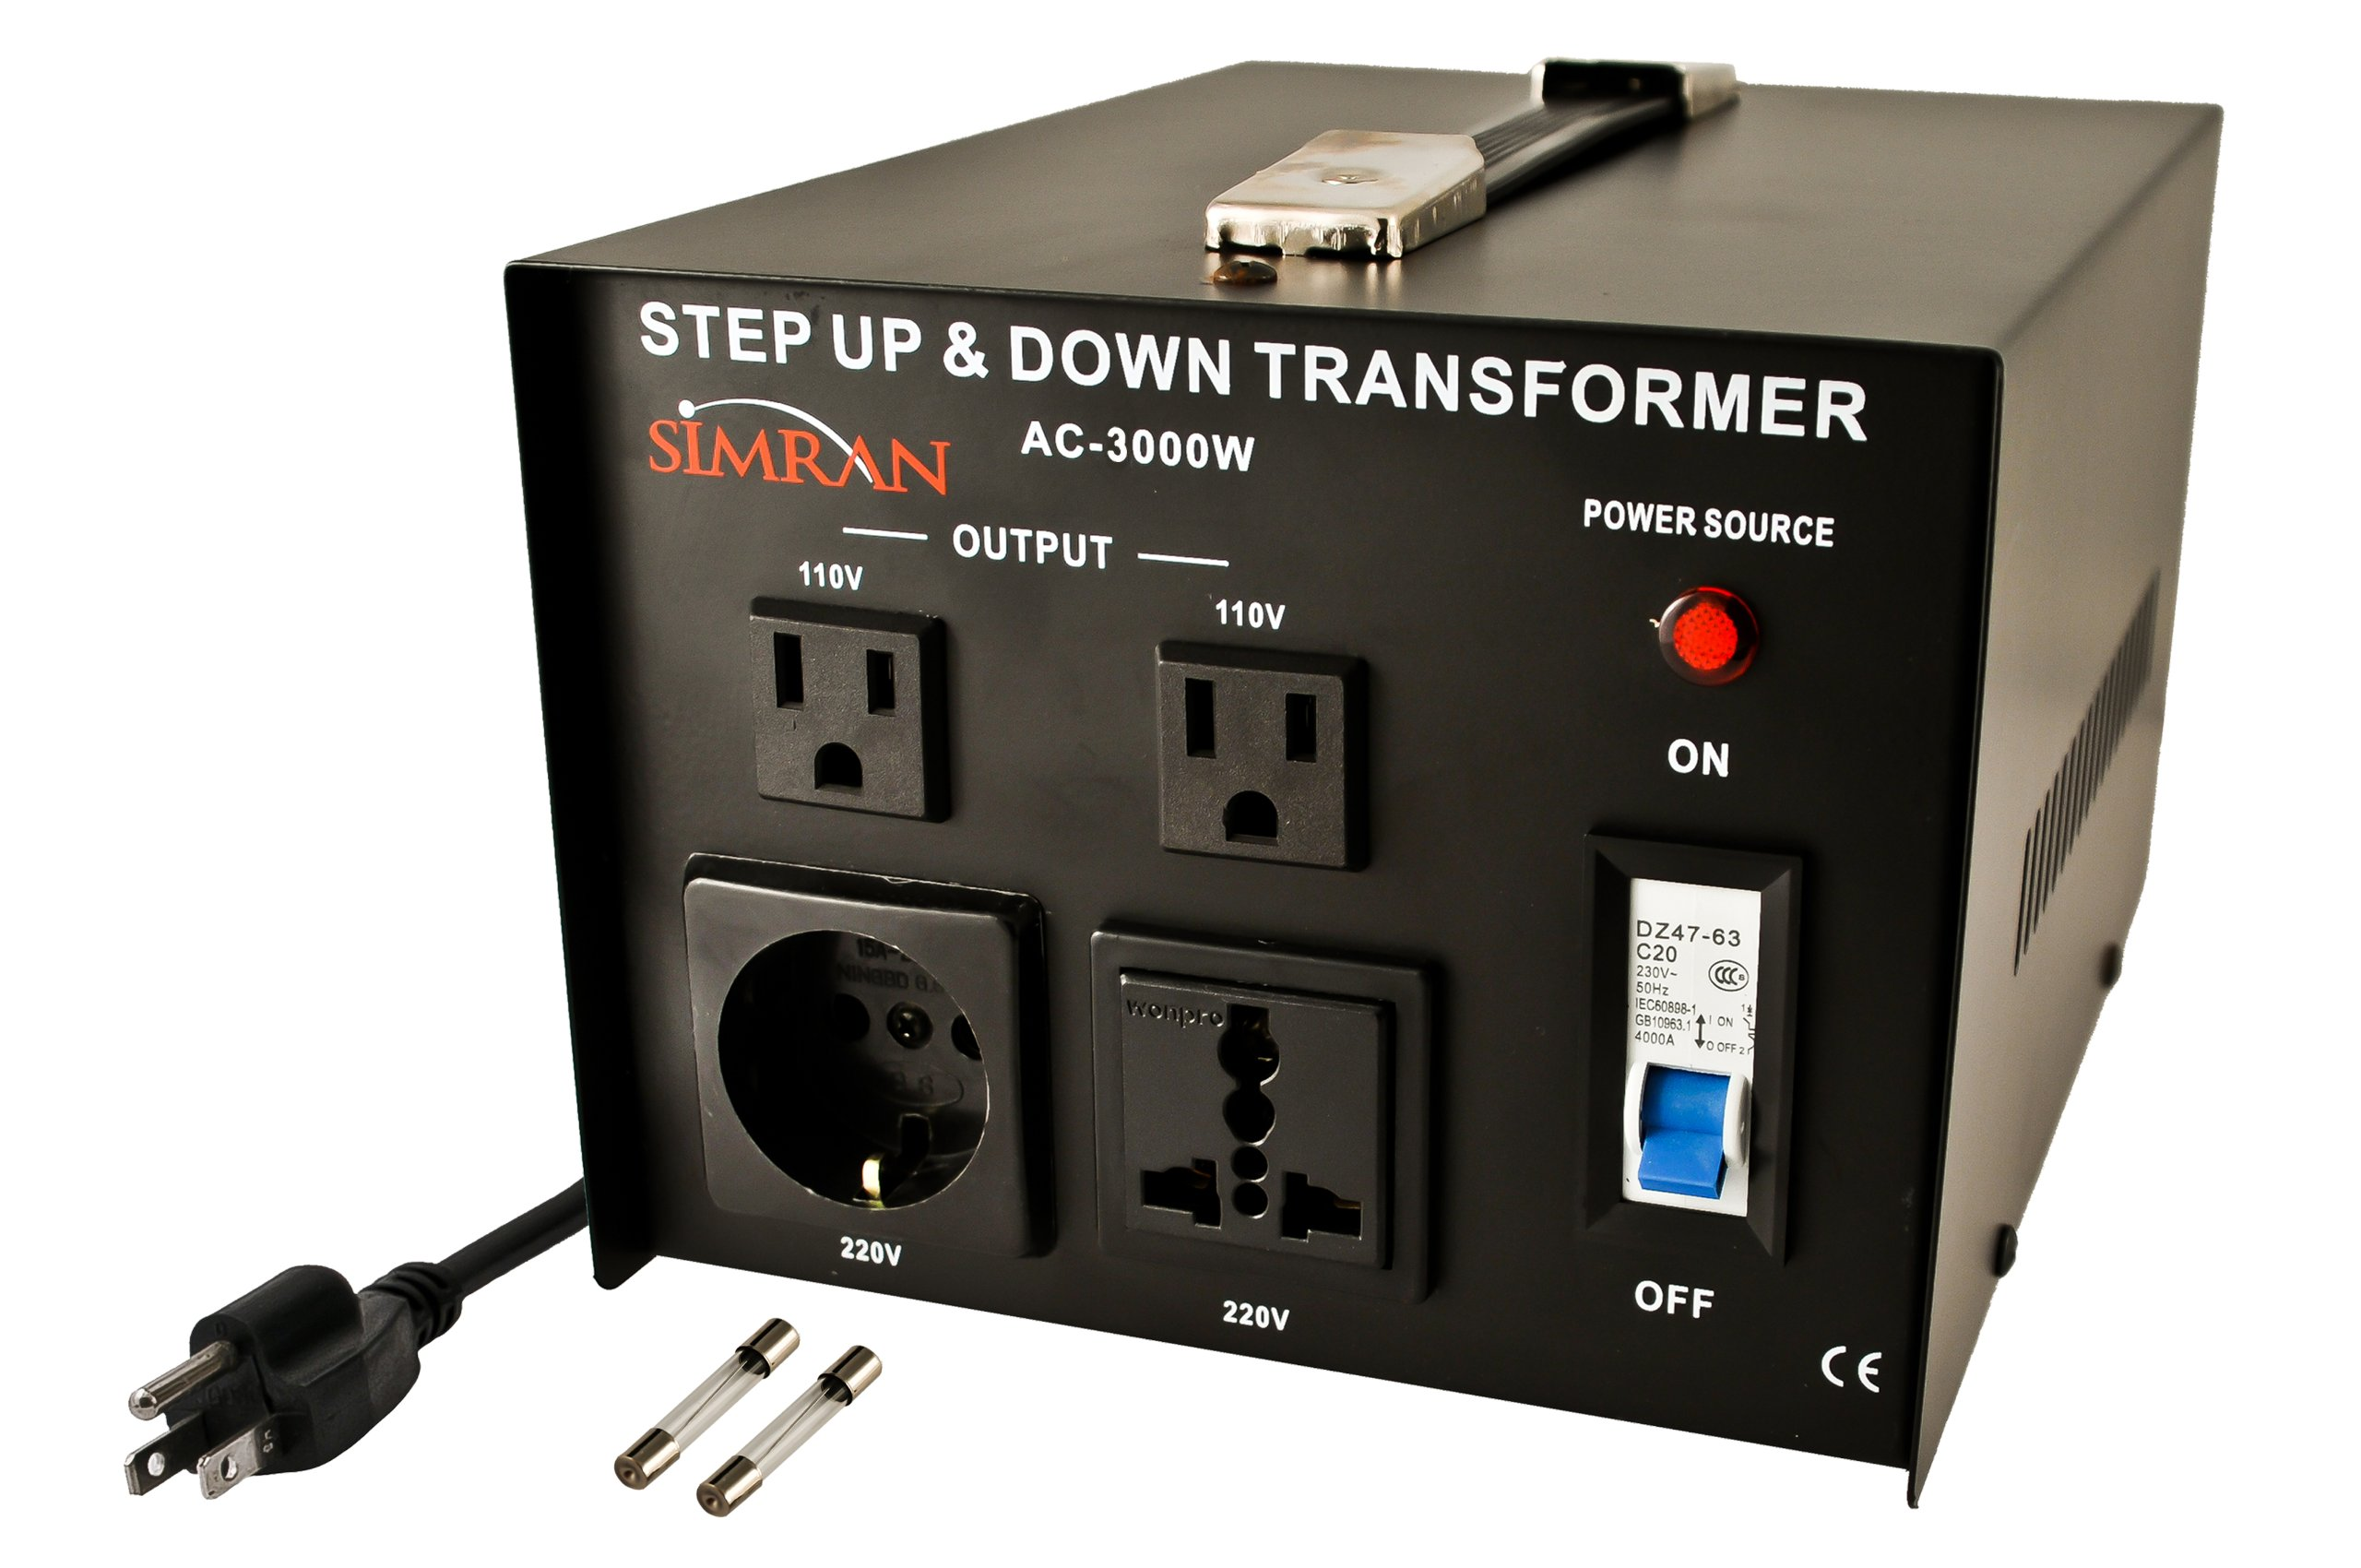 Simran AC-3000  Step Up/Down Voltage Transformer 3000 Watts Power Converter for Conversion Between 110 Volt and 220 Volts, CE Certified by Simran